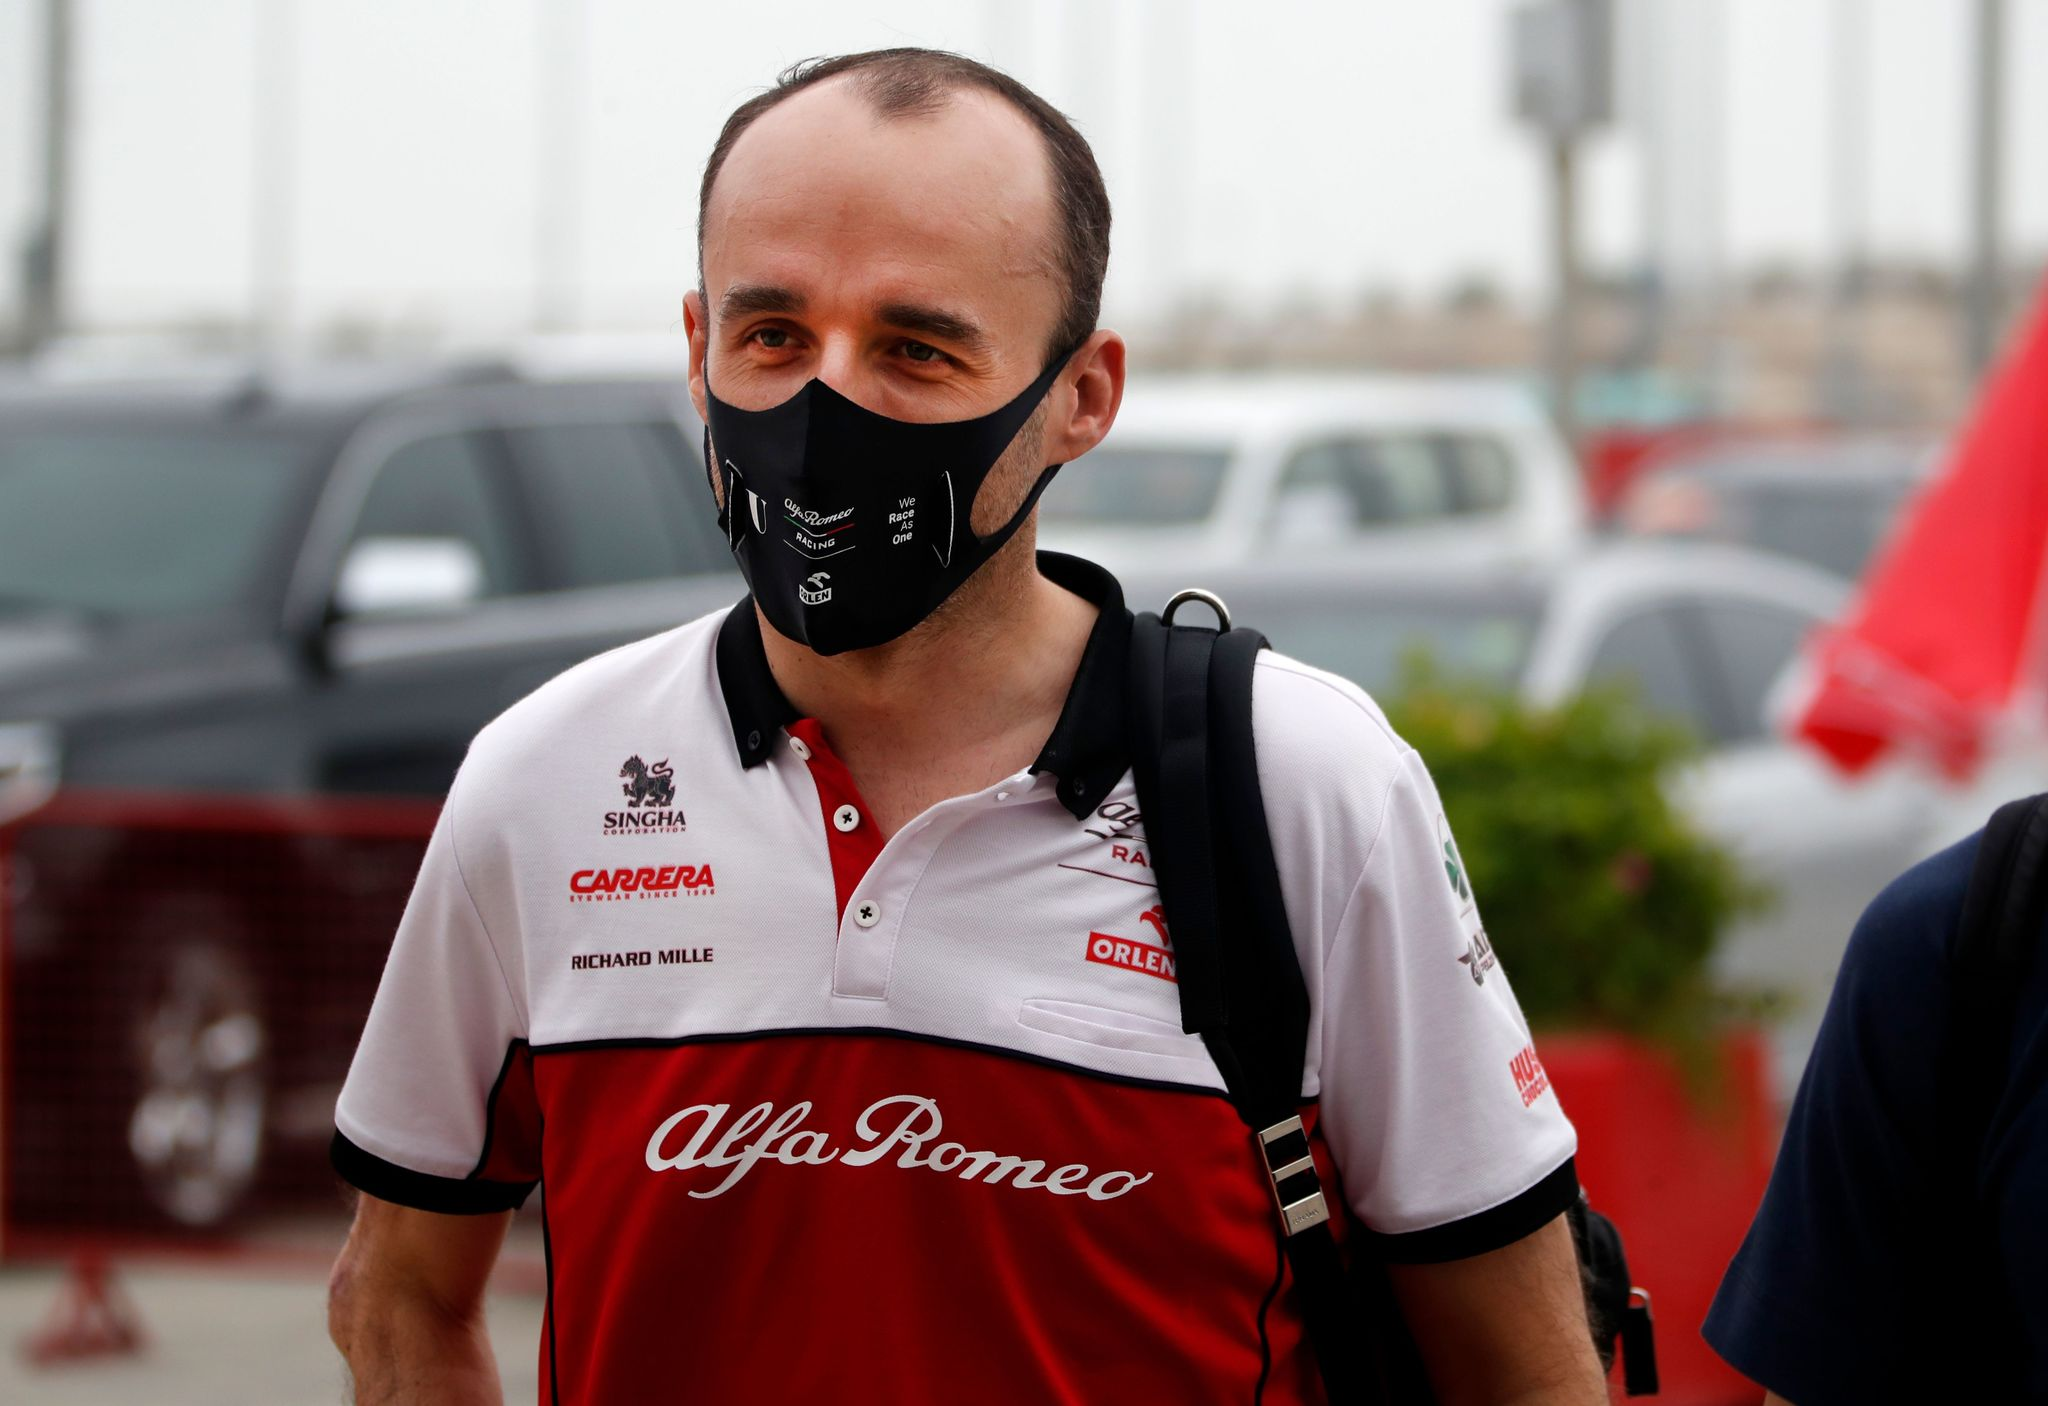 Alfa Romeos Polish reserve driver Robert lt;HIT gt;Kubica lt;/HIT gt; arrives for the first practice session ahead of the Bahrain Formula One Grand Prix at the Bahrain International Circuit in the city of Sakhir on November 27, 2020. (Photo by HAMAD I MOHAMMED / POOL / AFP)